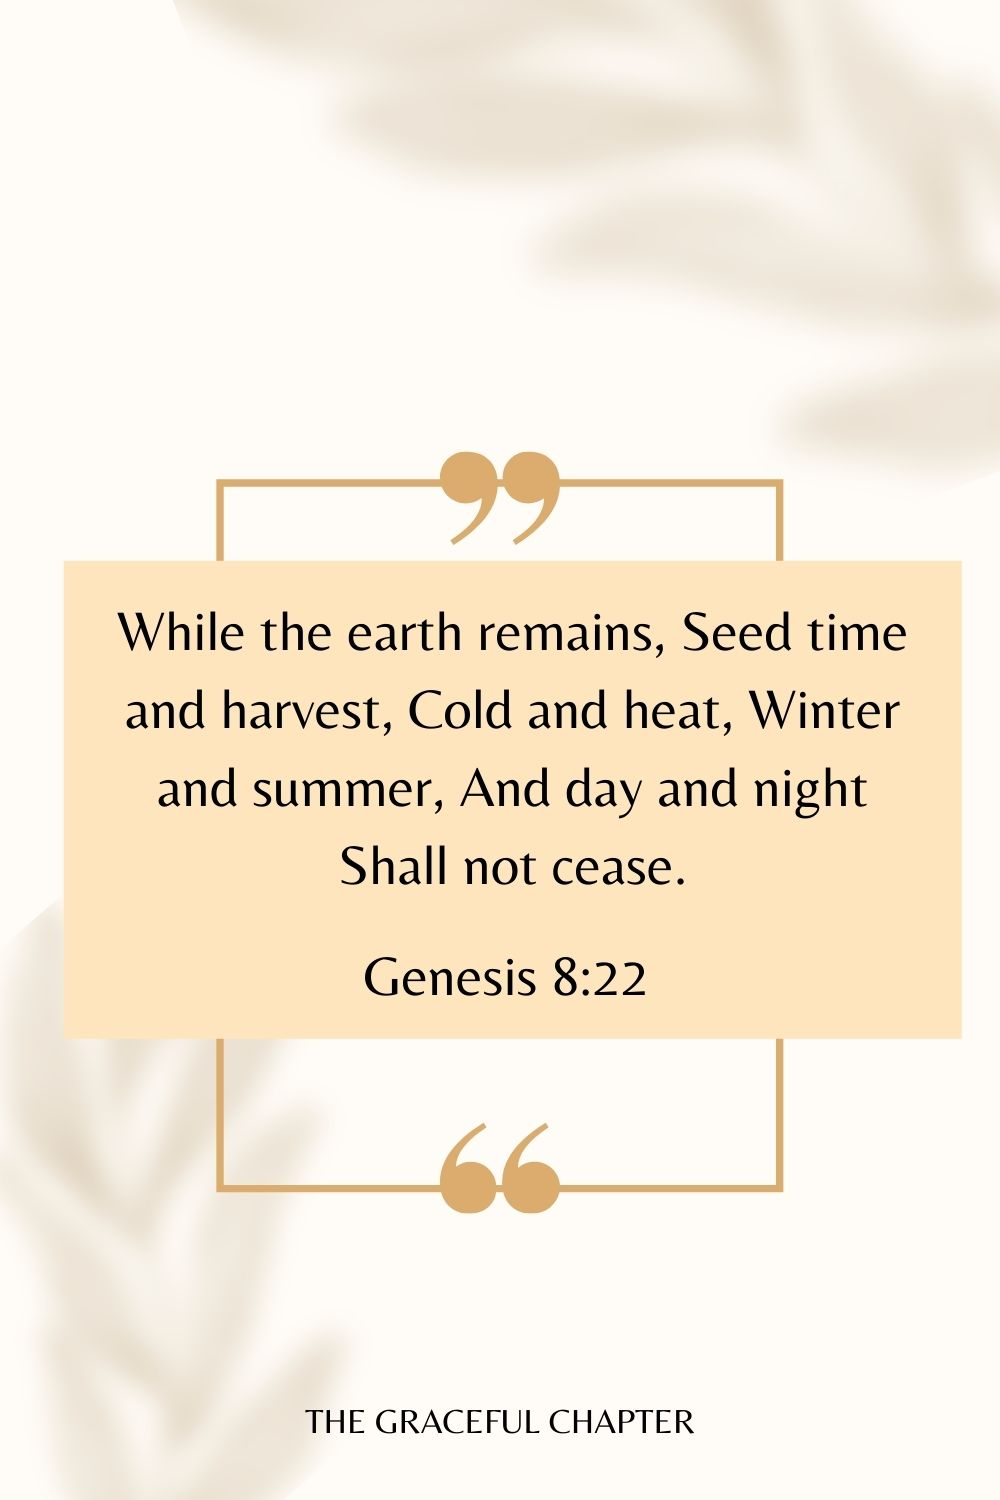 While the earth remains, Seed time and harvest, Cold and heat, Winter and summer, And day and night Shall not cease. Genesis 8:22